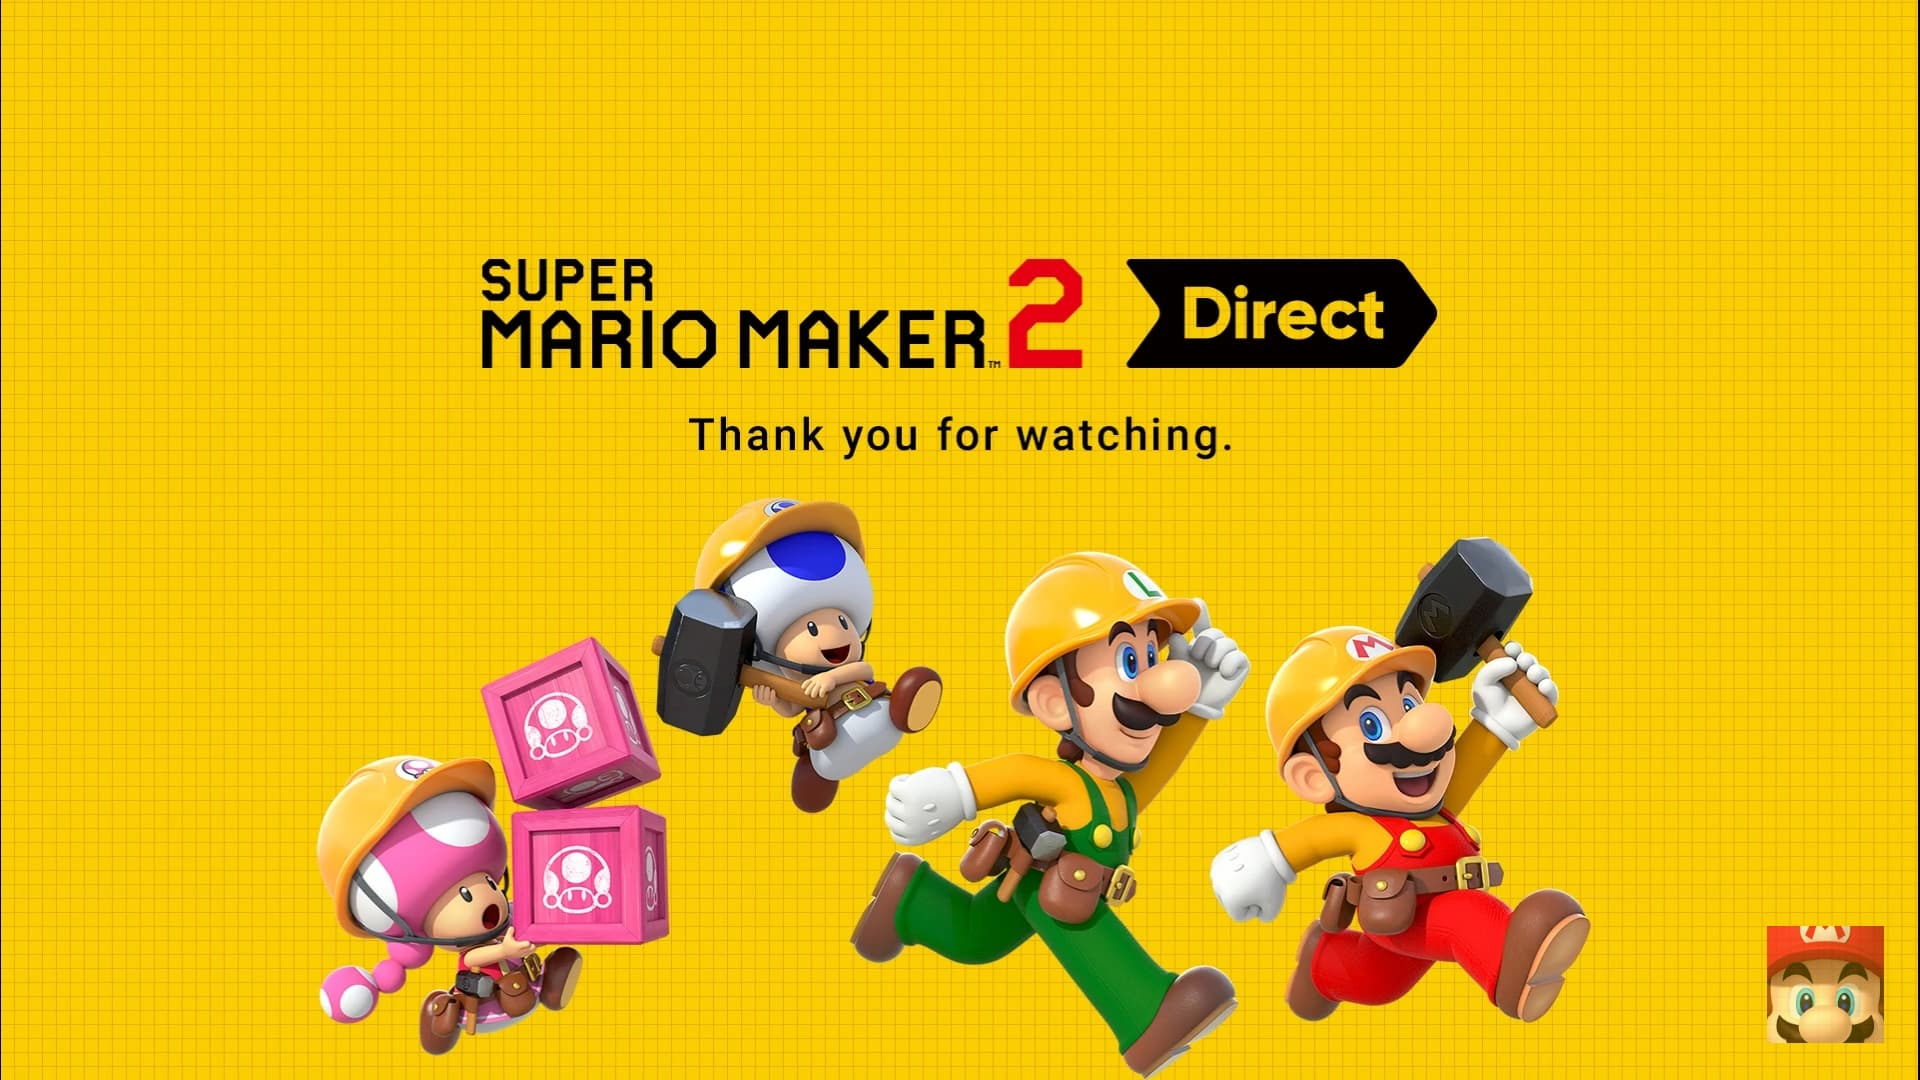 Super-Mario-Maker-2-Direct